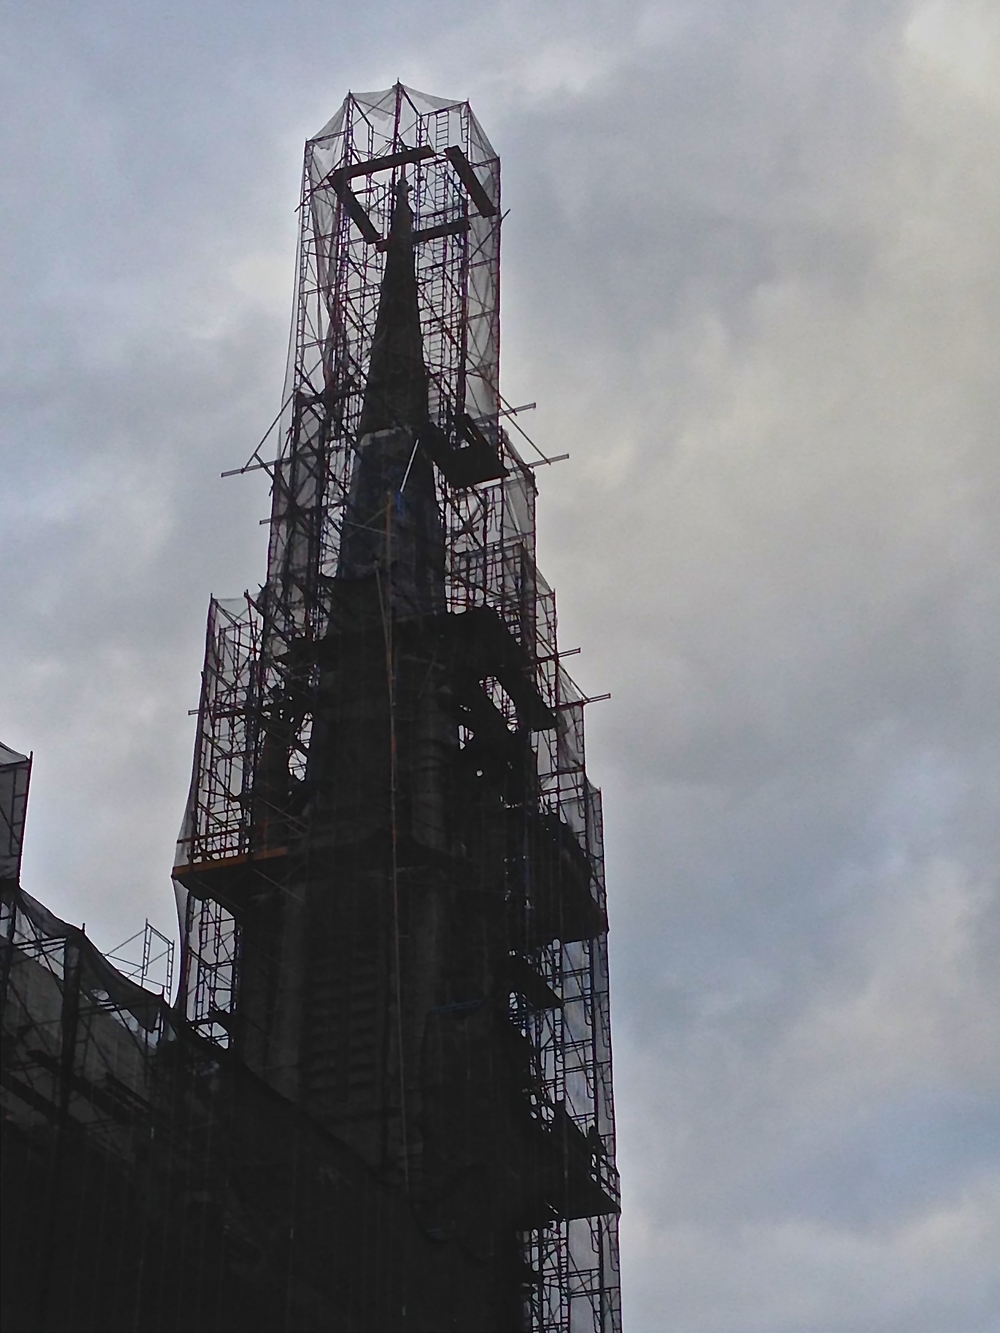 Scaffolding on a Steeple